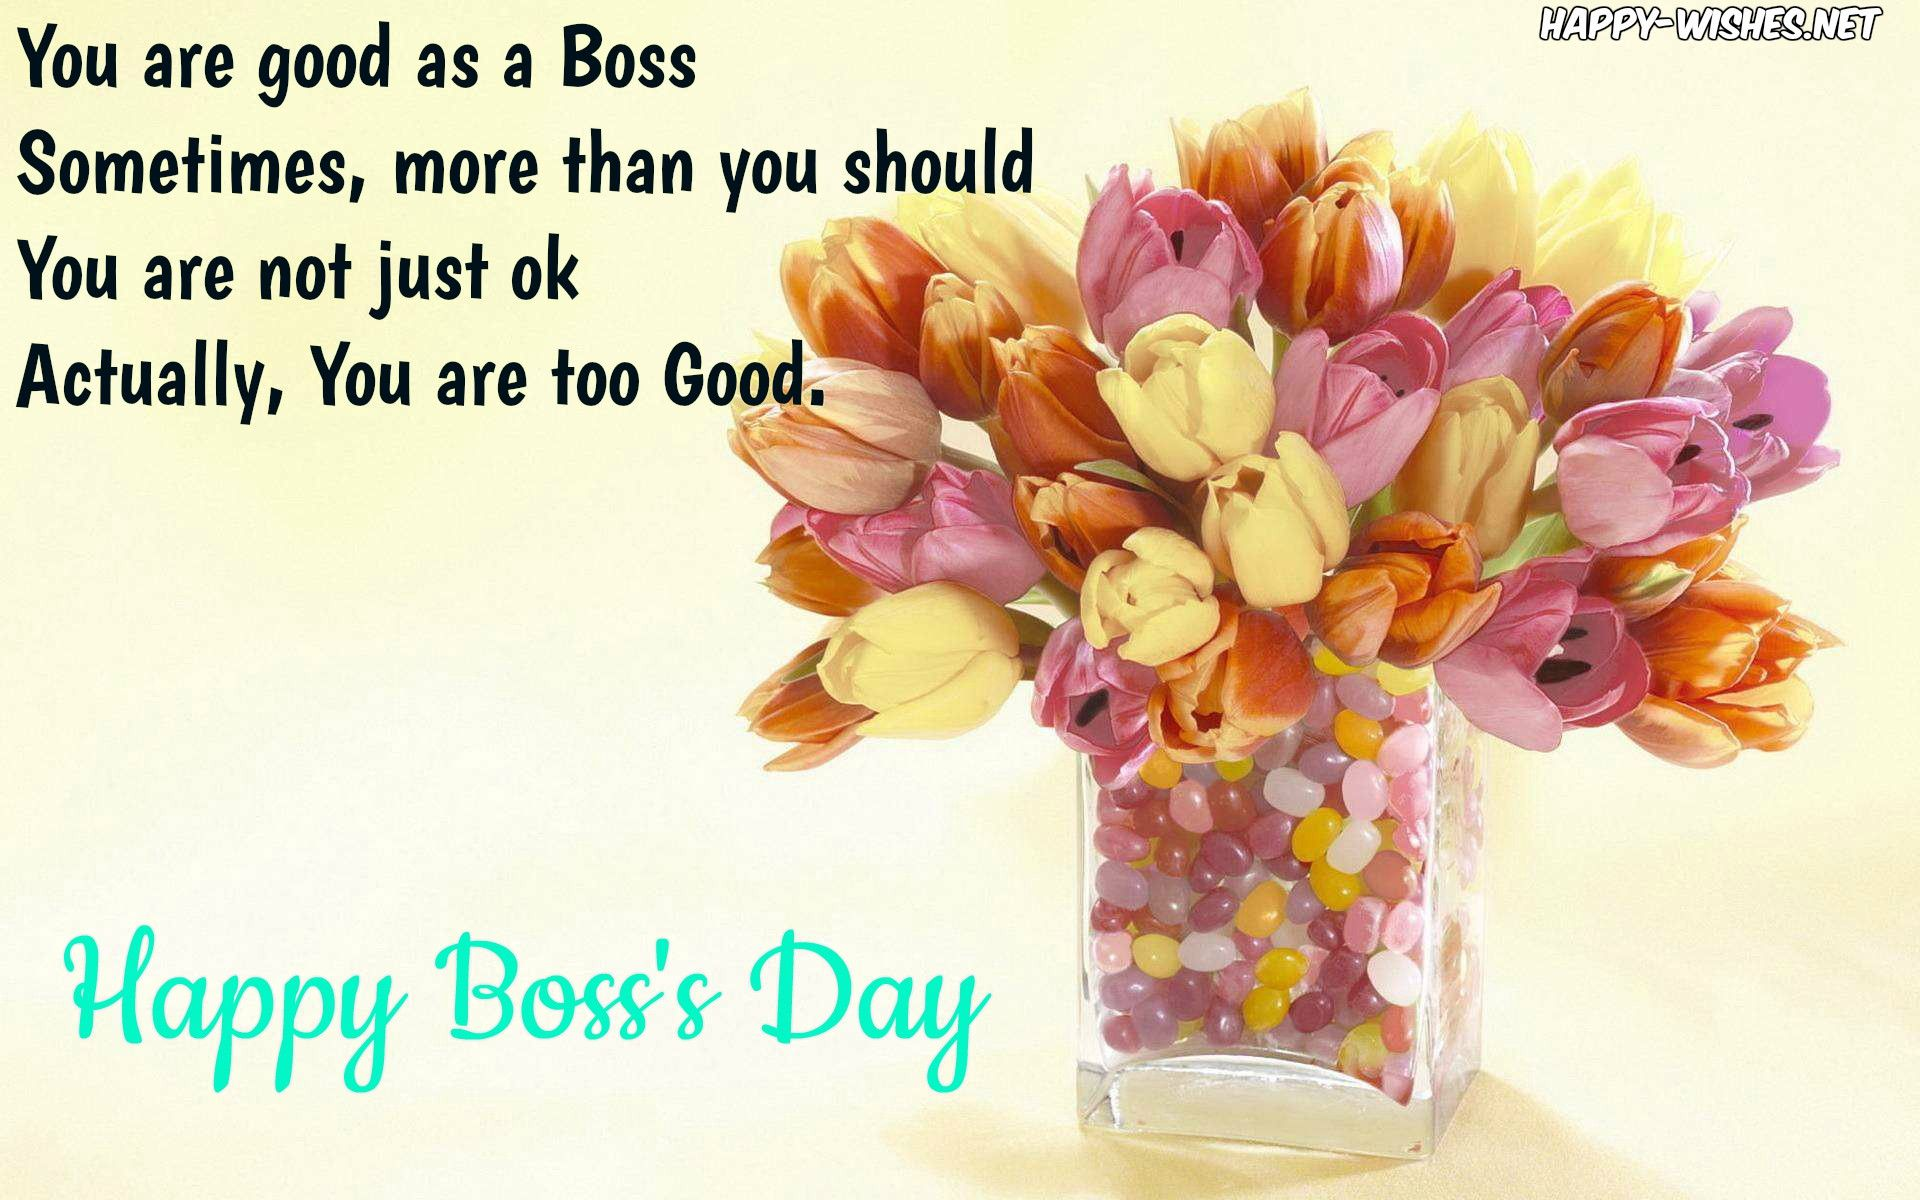 Happy boss day messages poster happy boss day messages and clipart happy boss day messages poster m4hsunfo